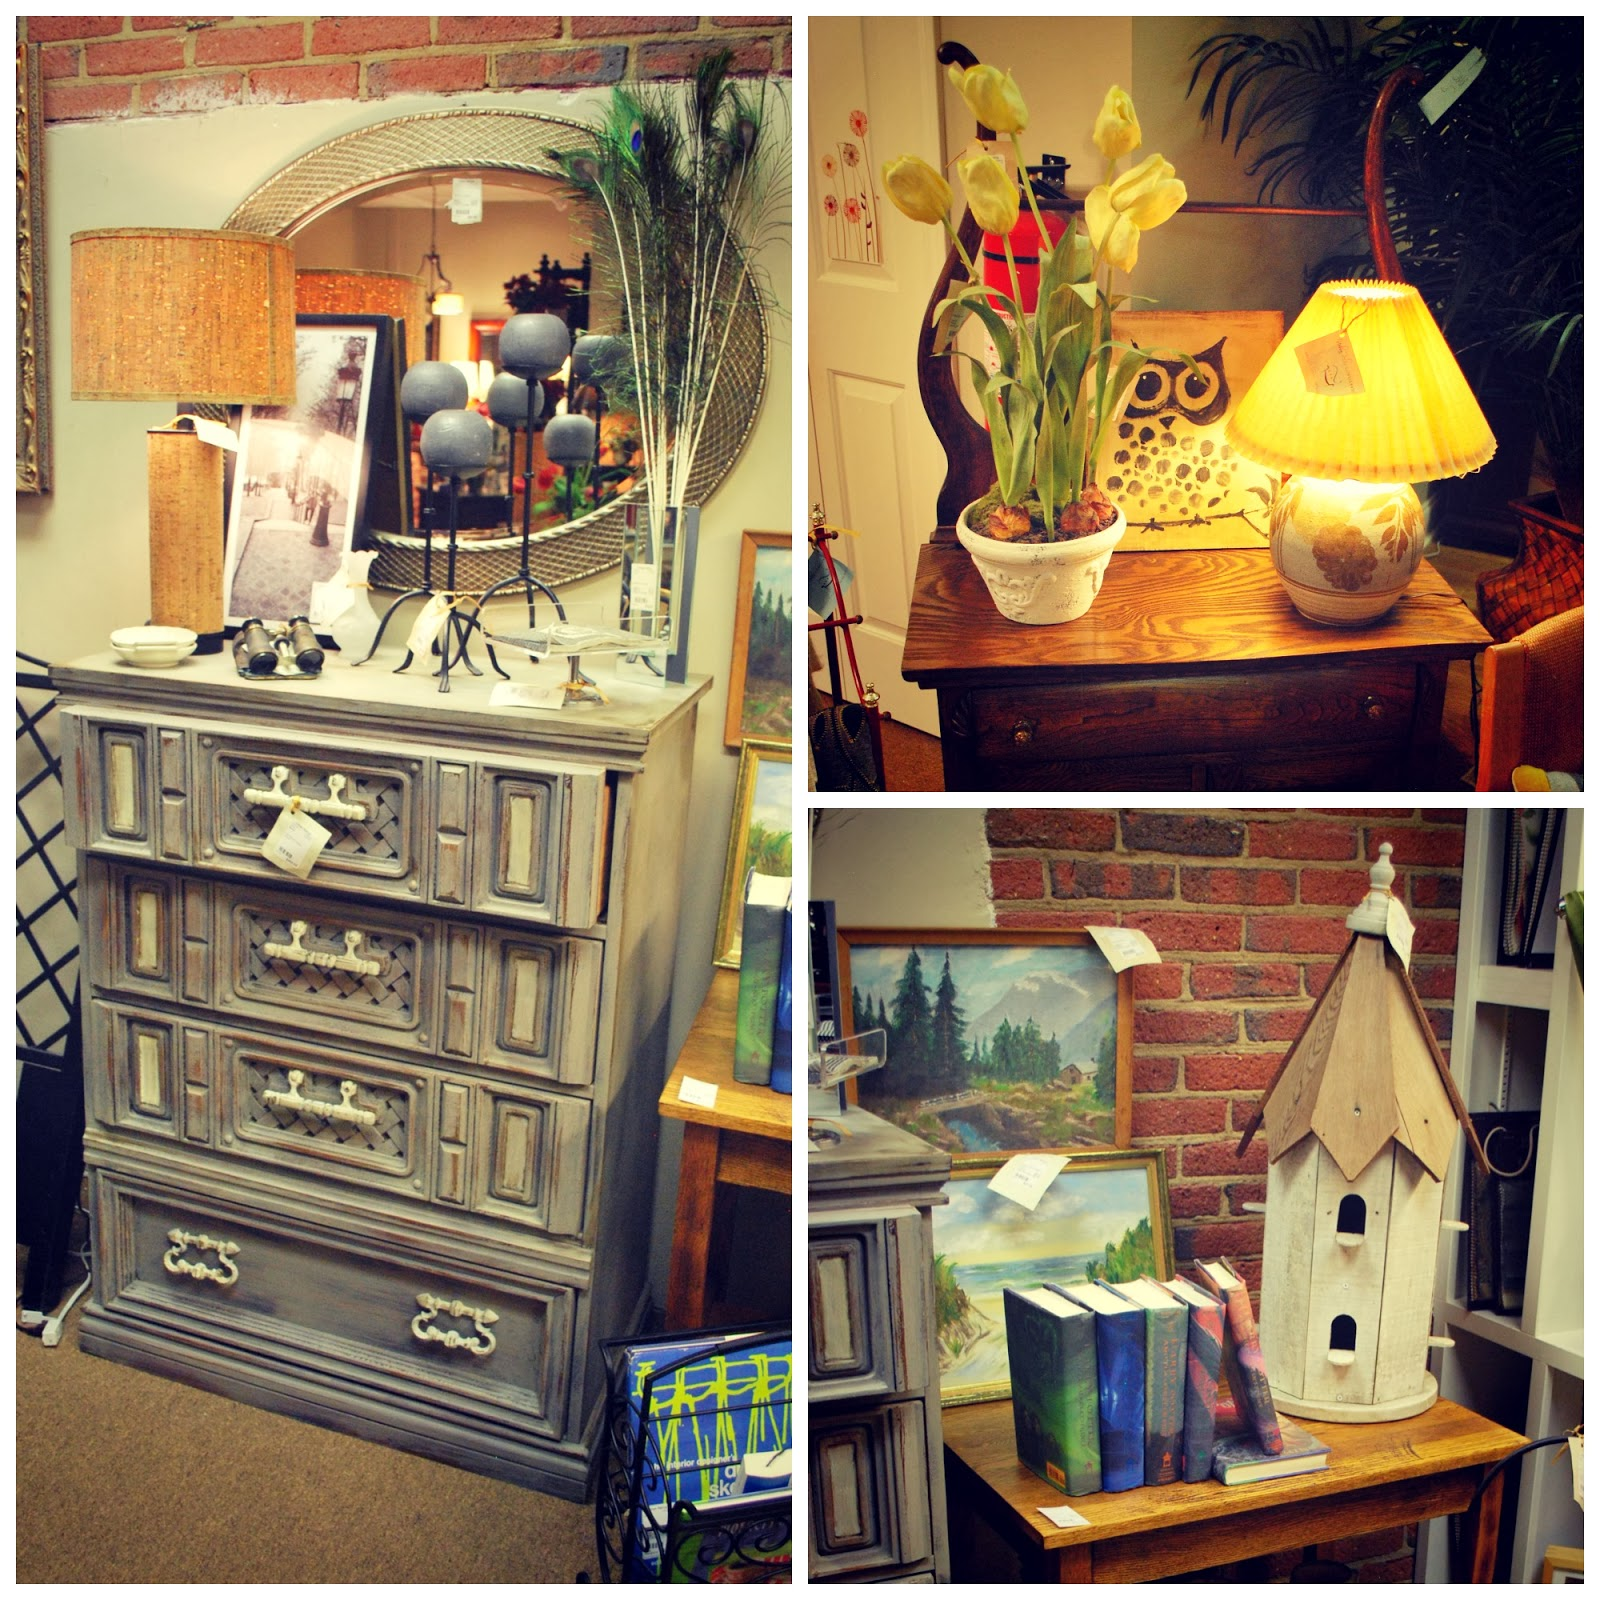 eco chic furniture. Furniture Consignment Marietta, Atlanta, Antique Eco Chic N